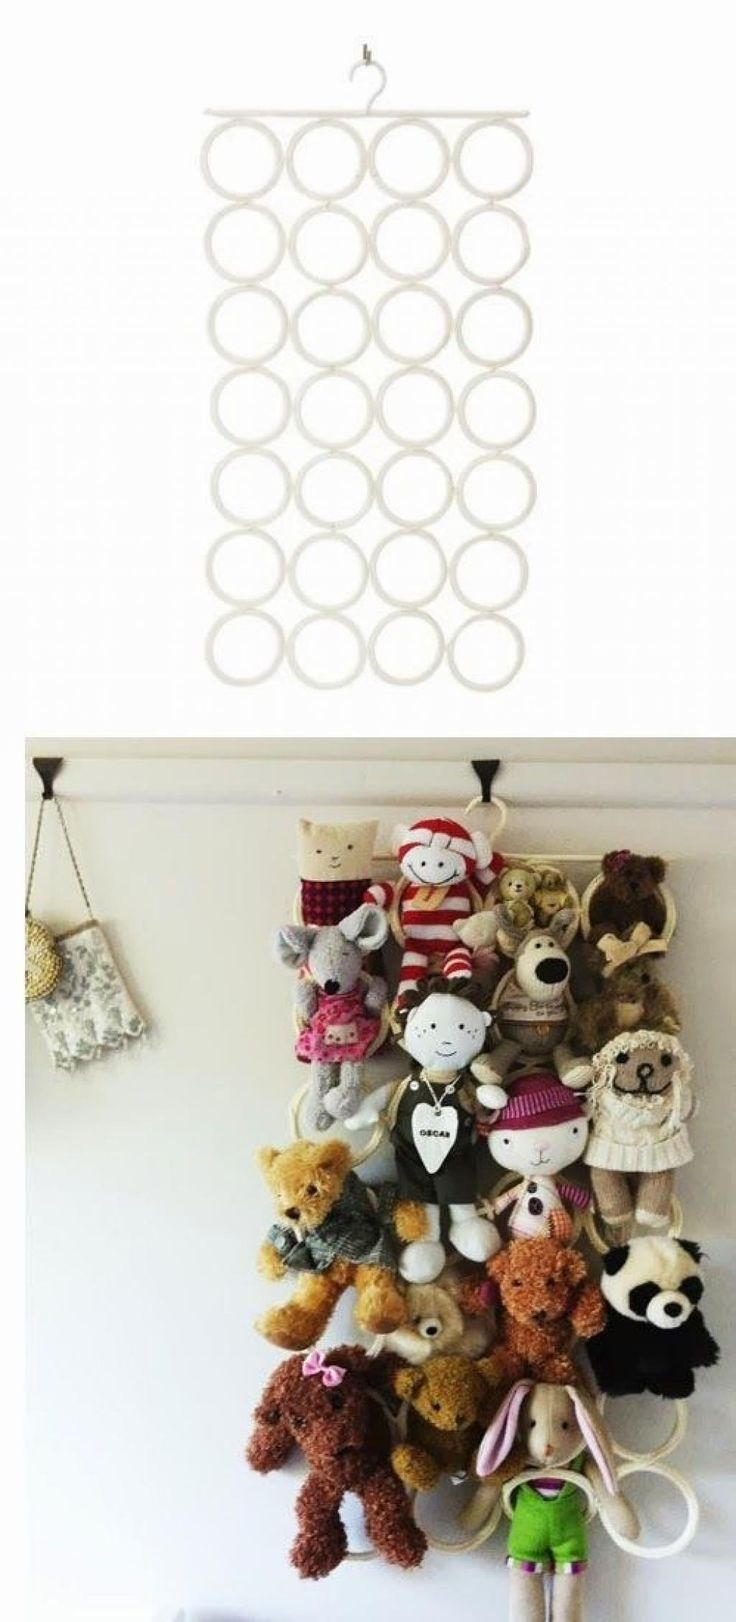 25 unique scarf hanger ideas on pinterest curtain scarf ideas curtains ring top and scarf. Black Bedroom Furniture Sets. Home Design Ideas